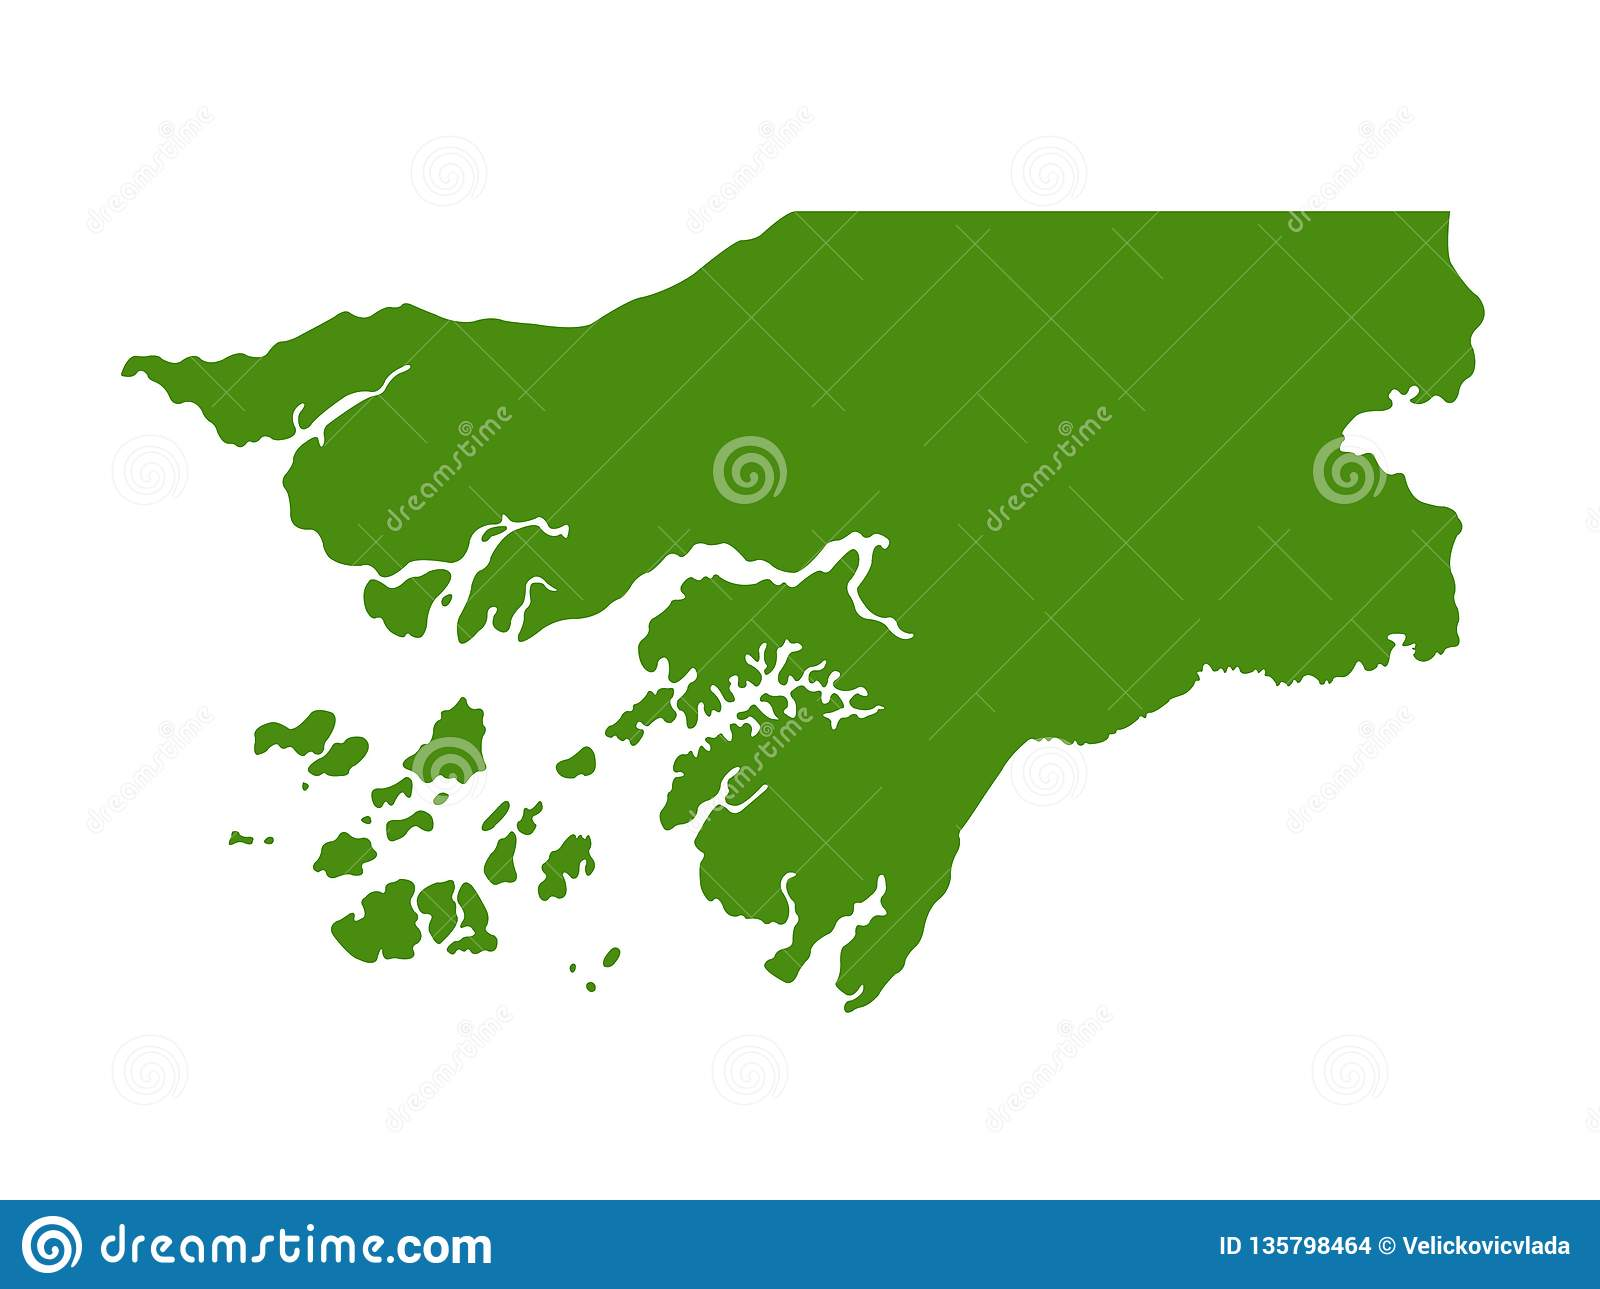 Gambia Map - Republic Of The Gambia Stock Vector ... on djibouti africa map, mauritius africa map, uganda africa map, dakar africa map, casablanca africa map, algeria africa map, lesotho africa map, ghana africa map, lake nyasa africa map, rwanda africa map, guinea africa map, swaziland africa map, johannesburg africa map, mauritania africa map, cape verde africa map, zambia africa map, malawi africa map, cairo africa map, timbuktu africa map, comoros africa map,